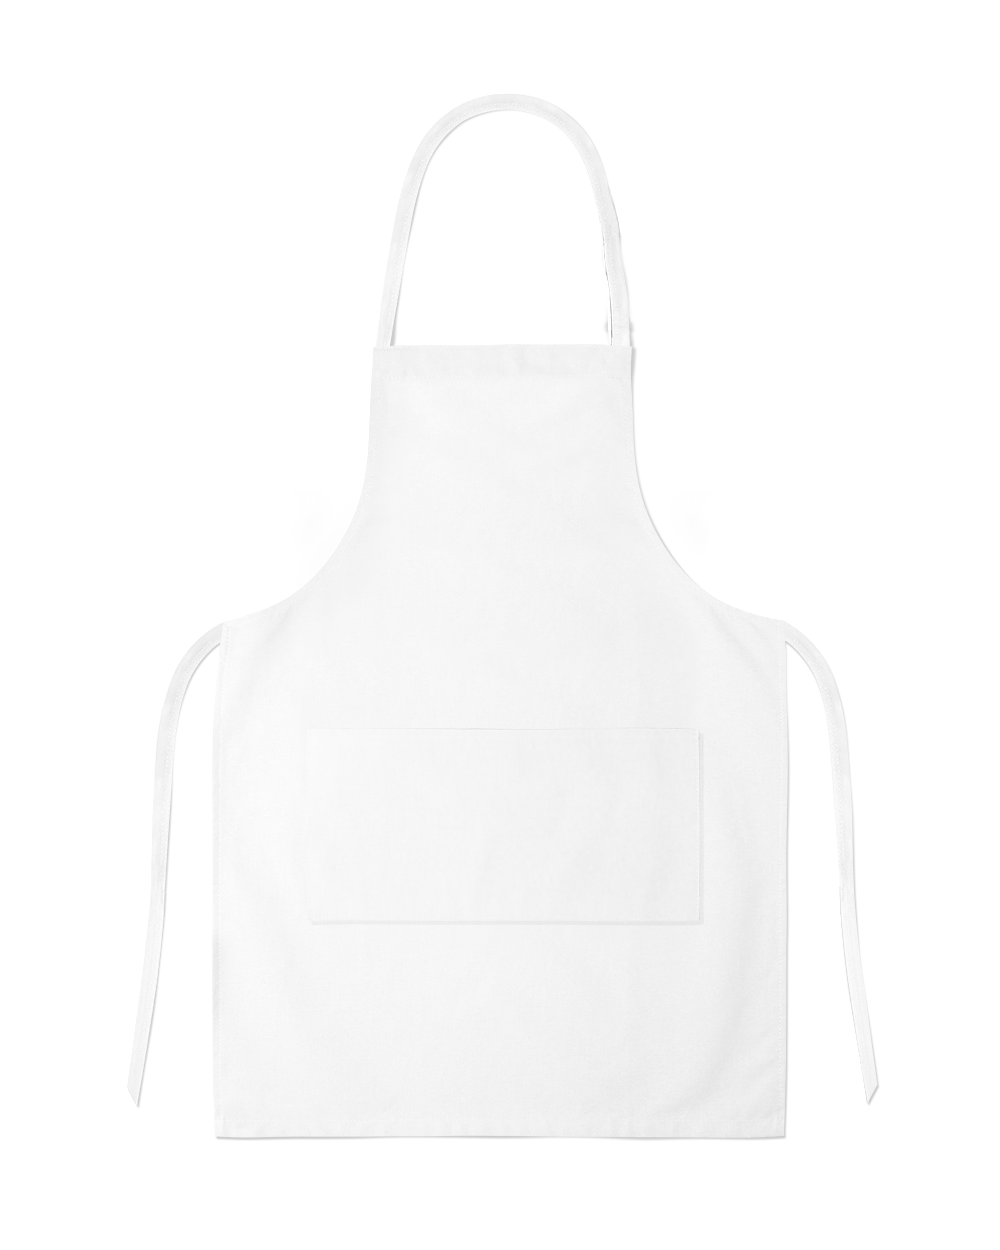 White Full Apron With Pocket PNG Image